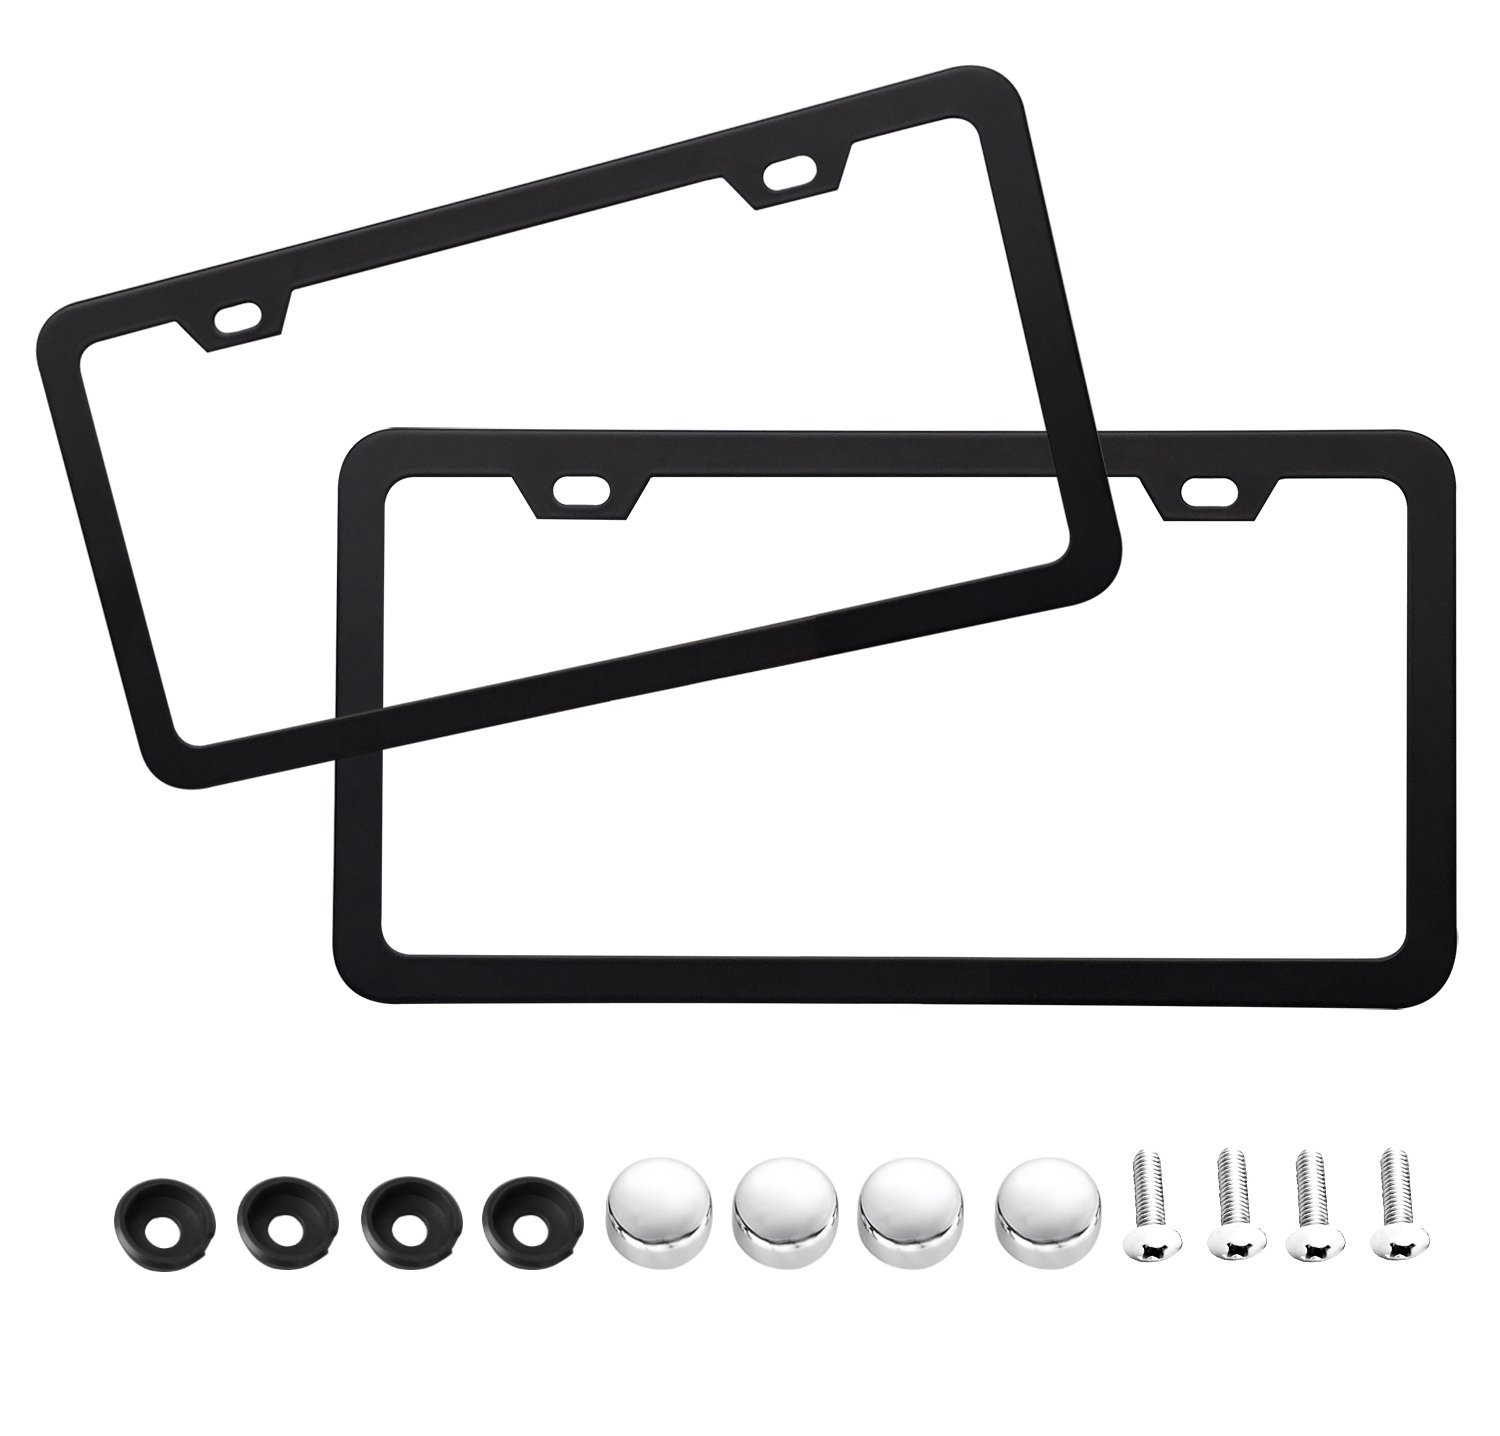 Cheap Girly License Plate Frames, find Girly License Plate Frames ...